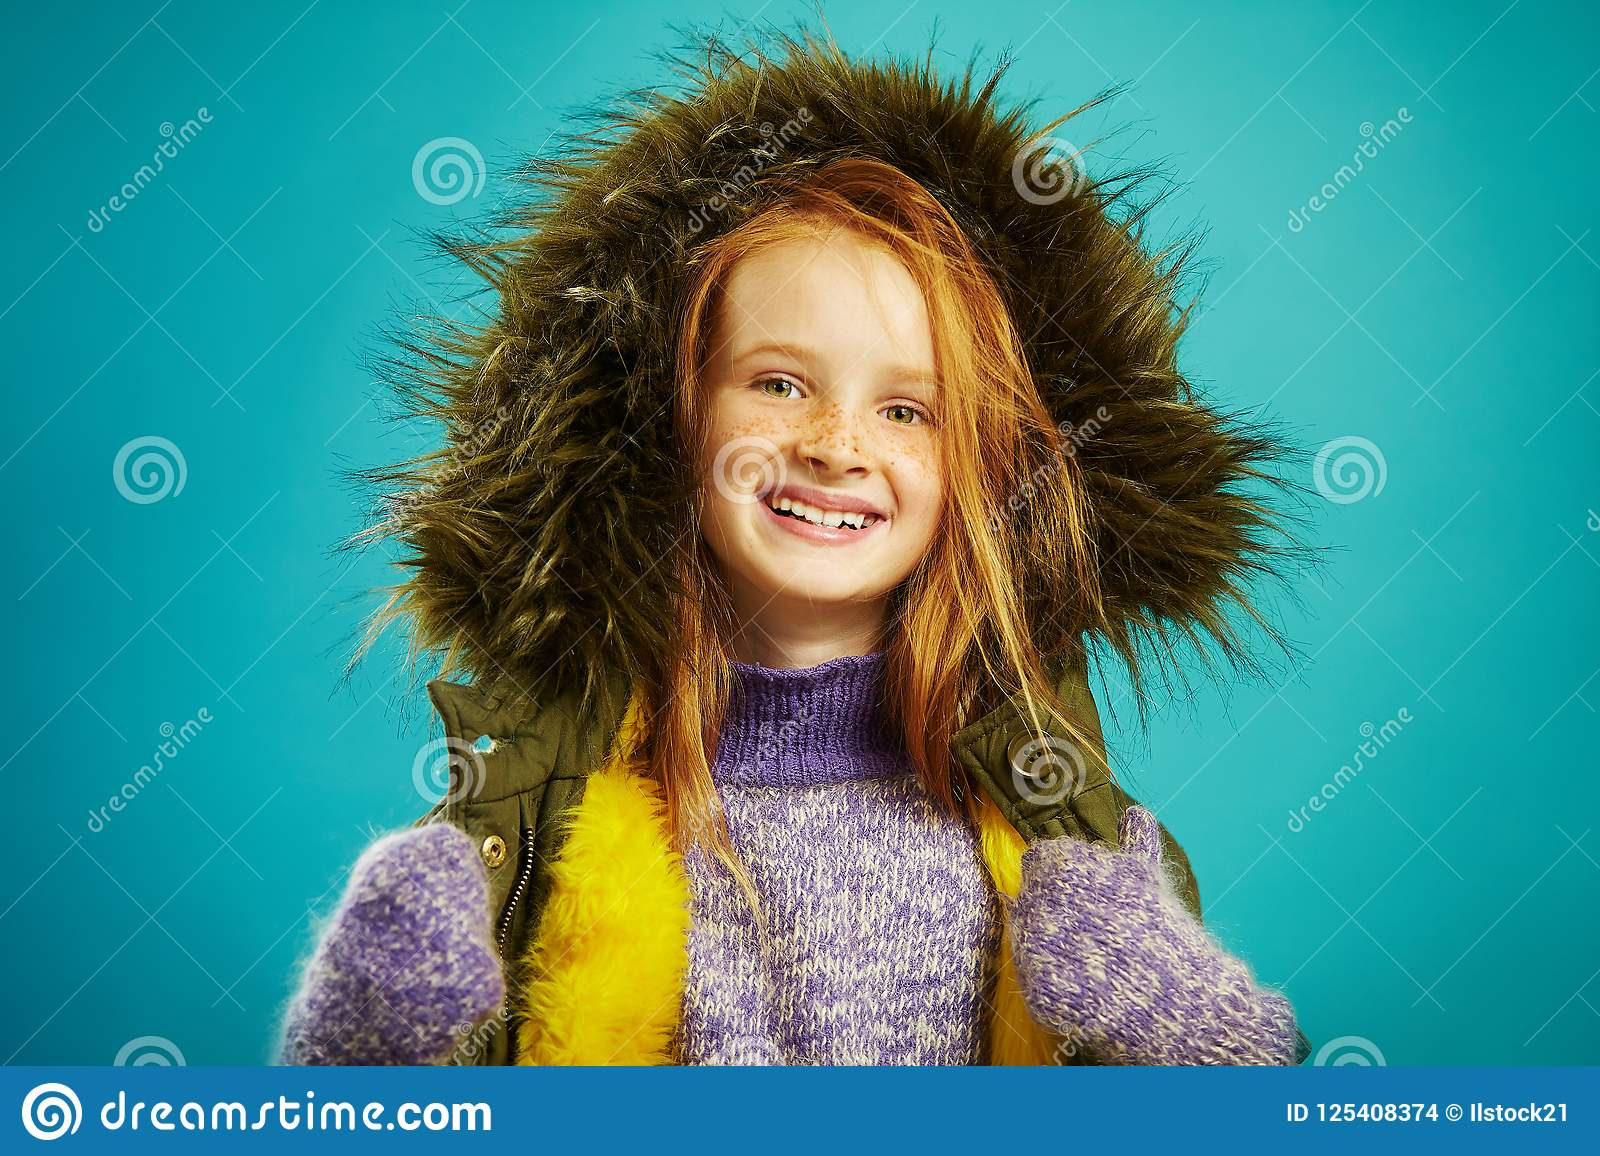 9cc8a2ef06972 Joyful girl of ten years in winter clothes over blue background. Red haired  child with beautiful freckles smiles, dressed in warm jacket, fur hood,  sweater, ...